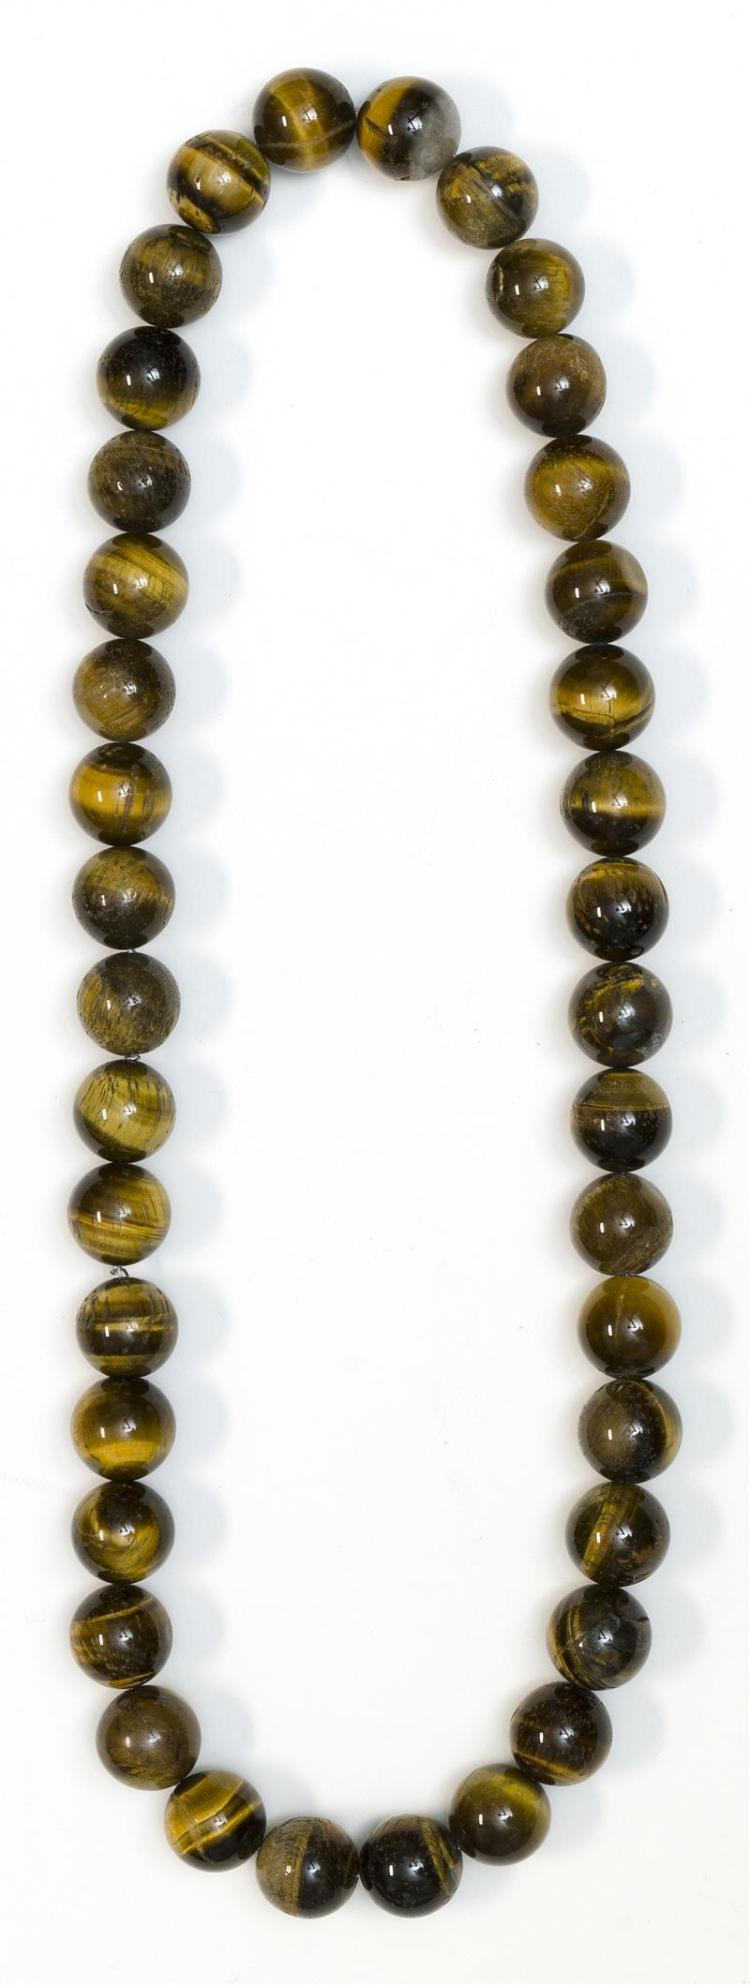 STRAND OF TIGER''S EYE BEADS Thirty-eight 17 mm beads.